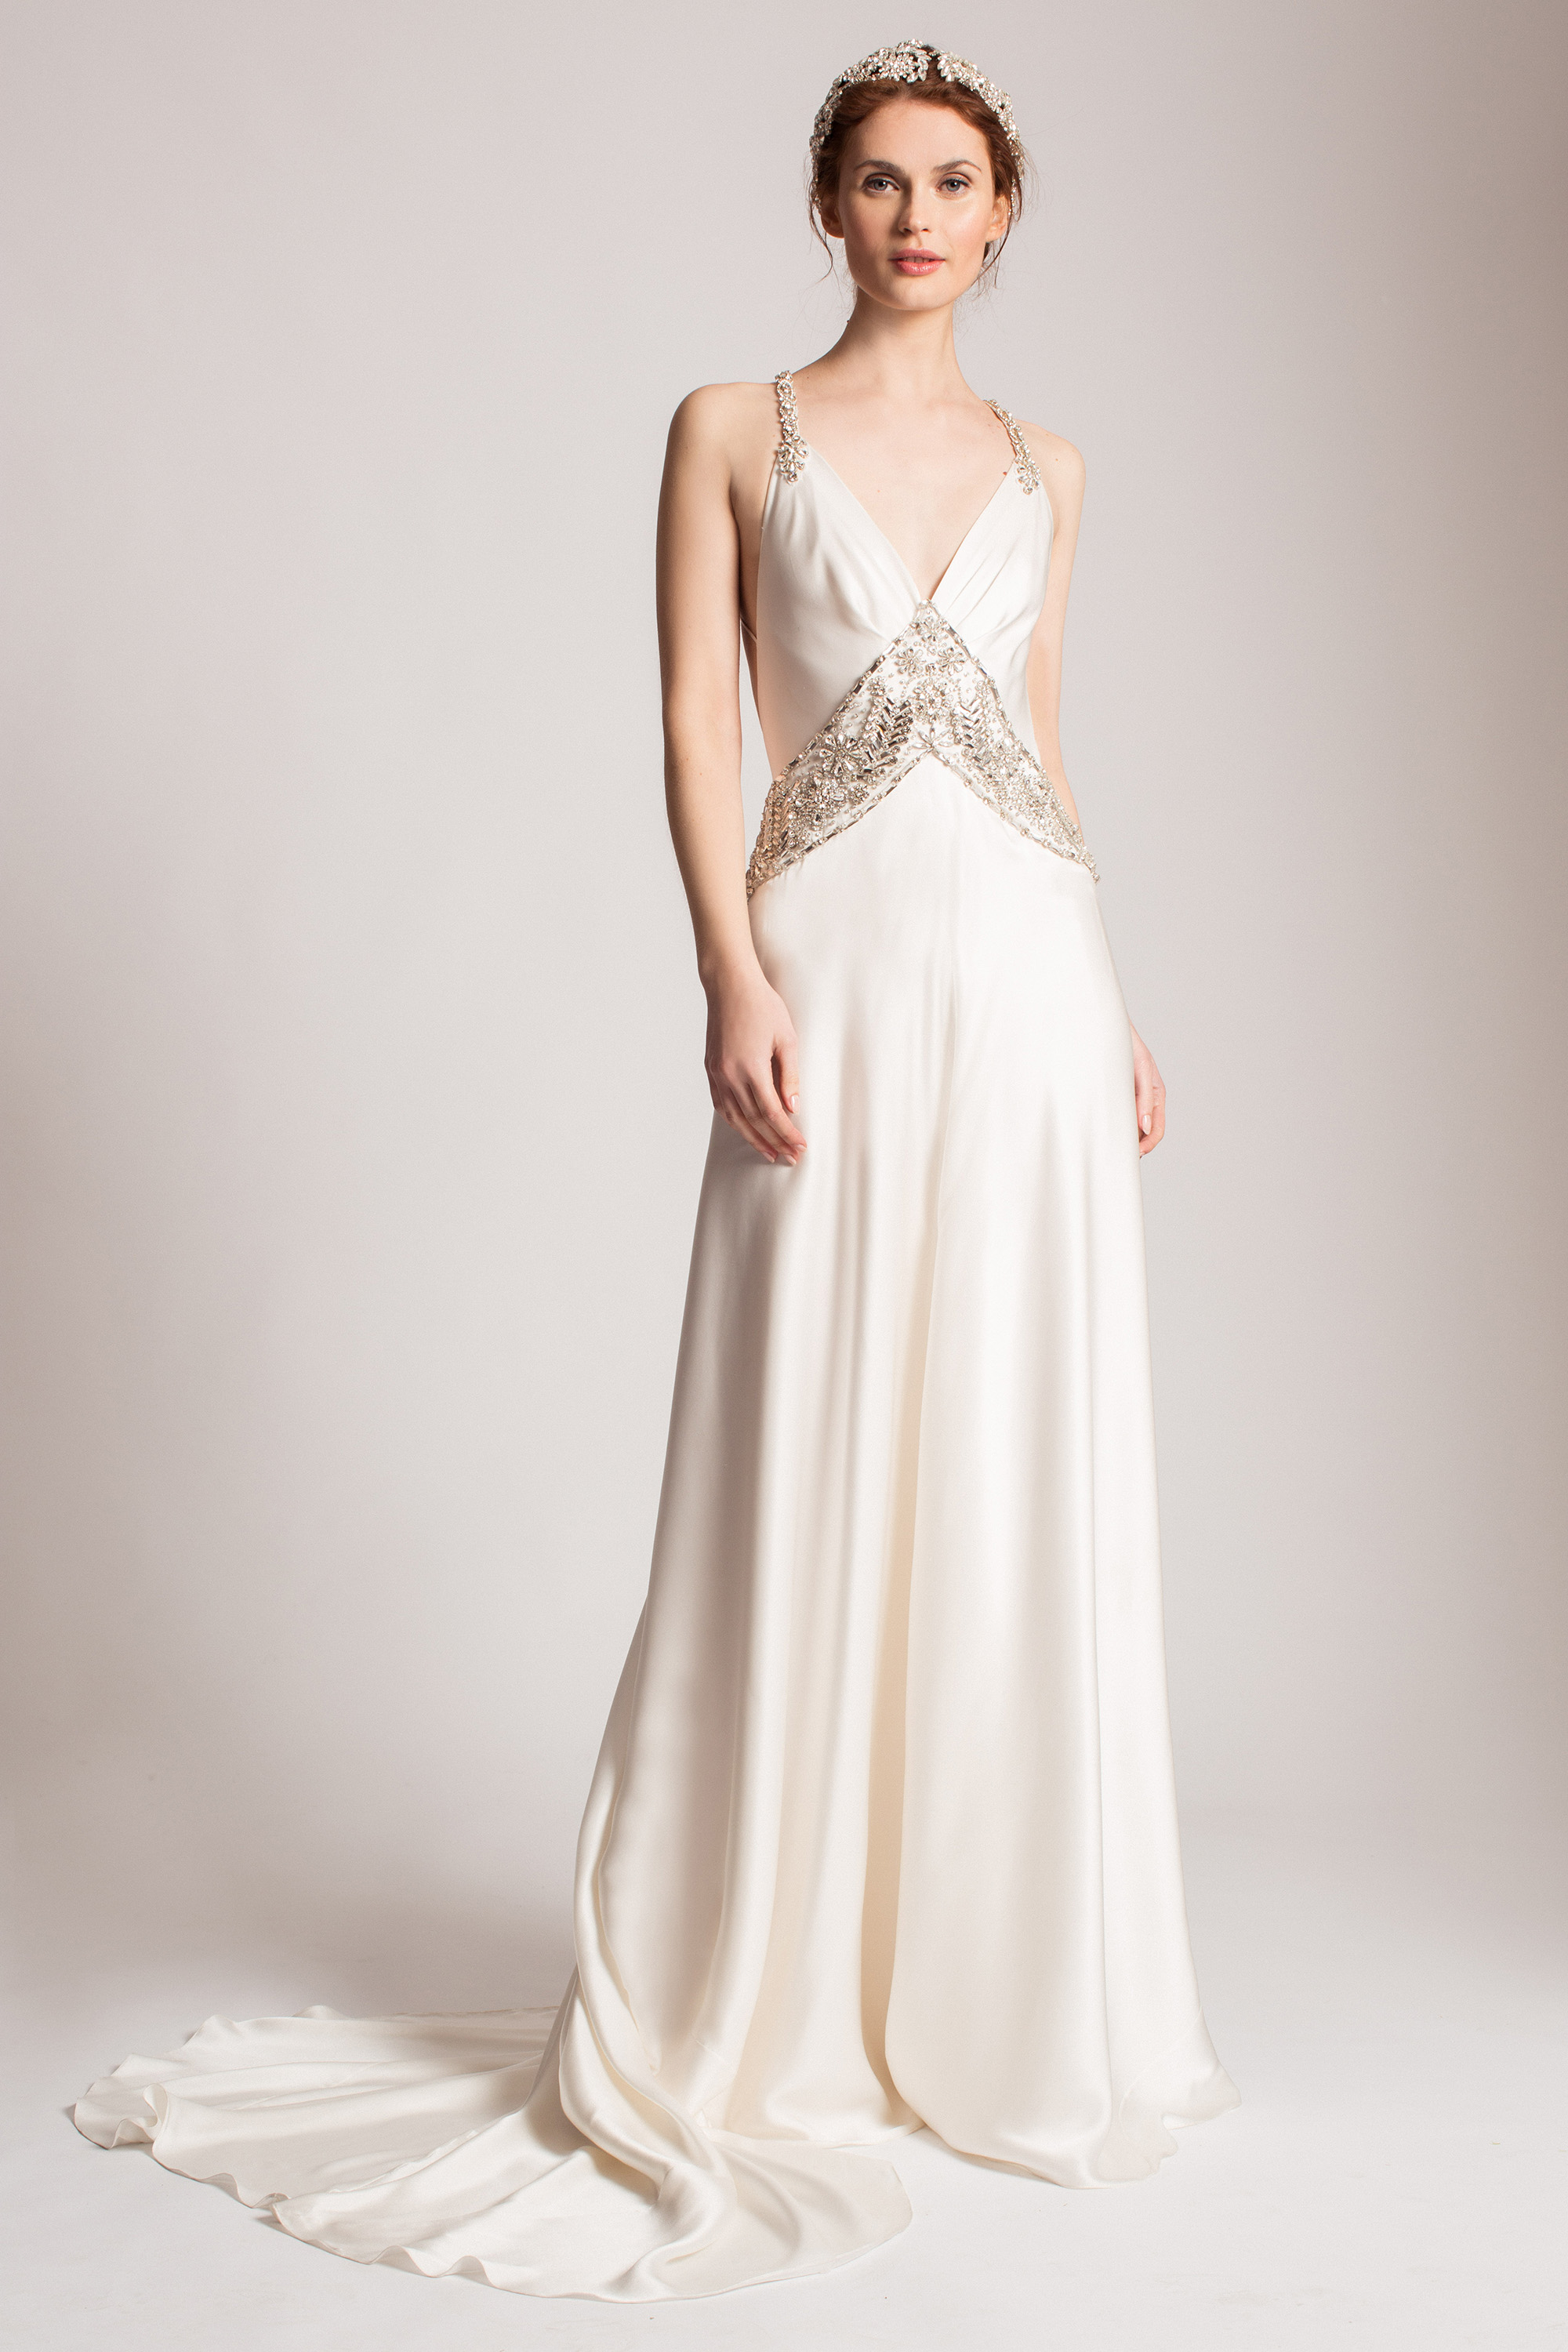 top wedding dress designers list 2016 31